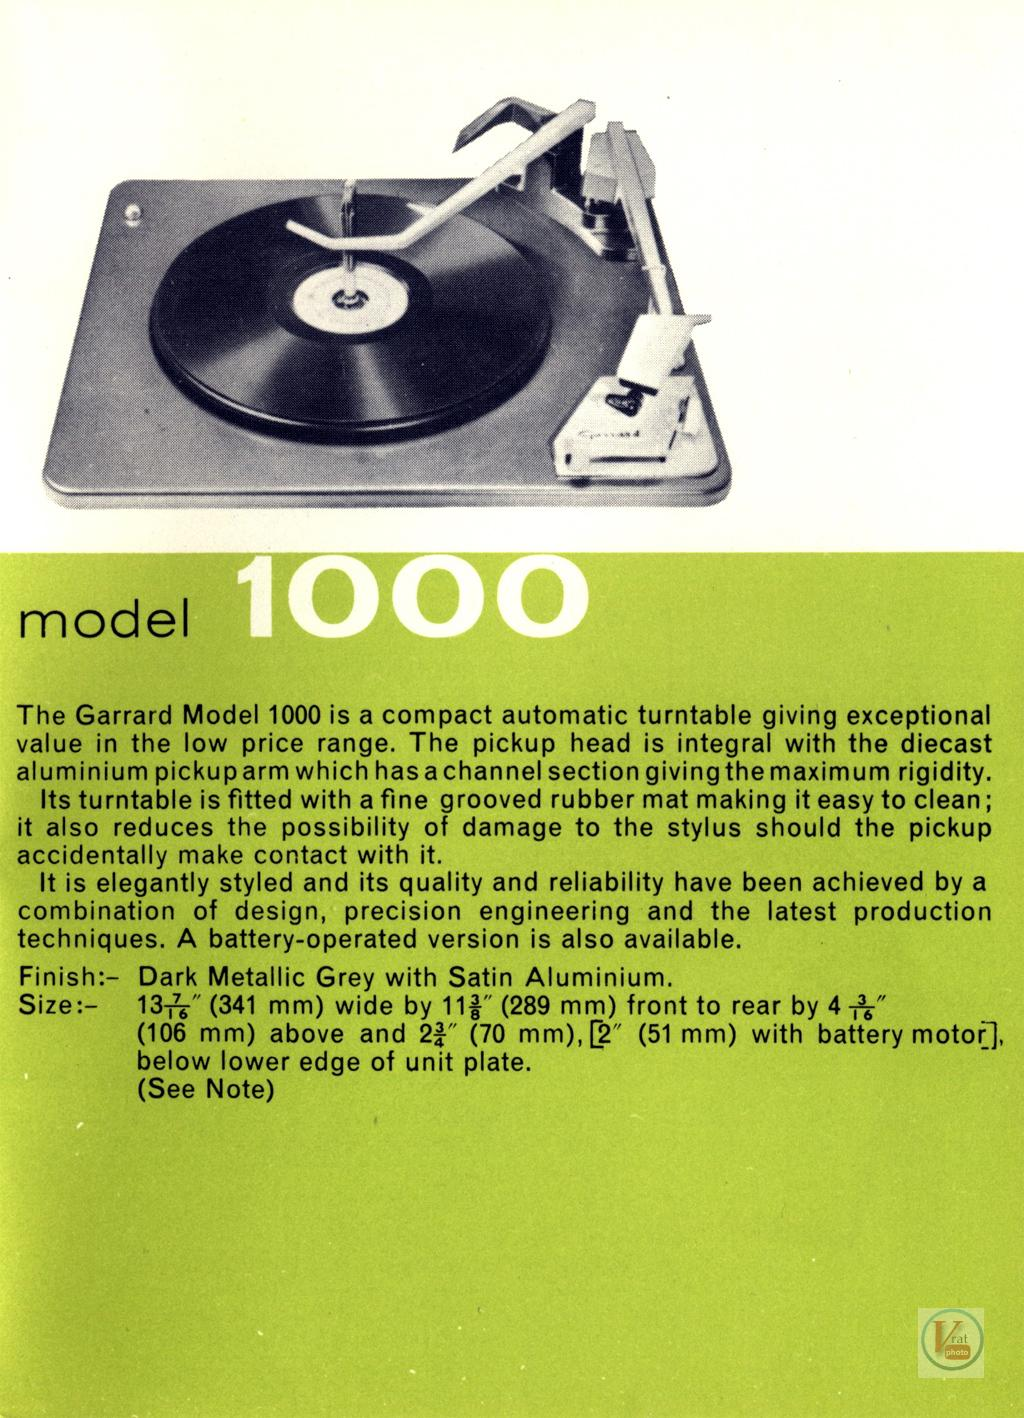 Garrard-401 Turntable 59